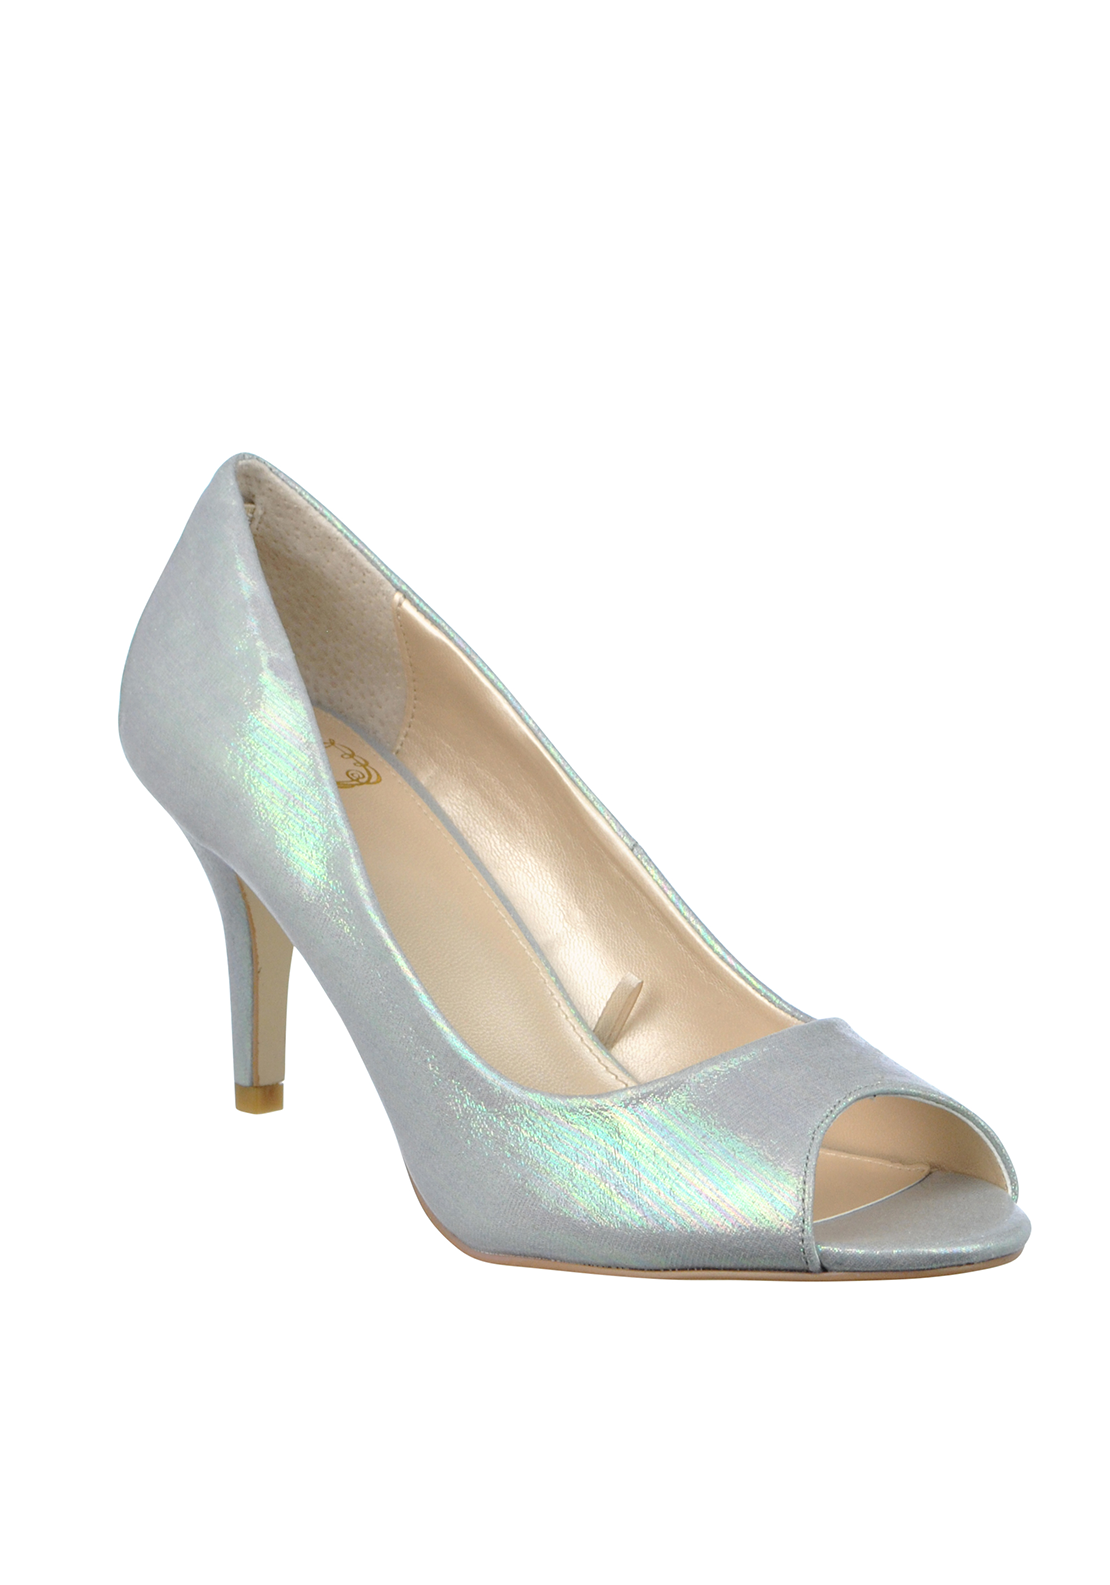 Lotus Hallmark Metallic Striped Peep Toe Heeled Shoes, Grey